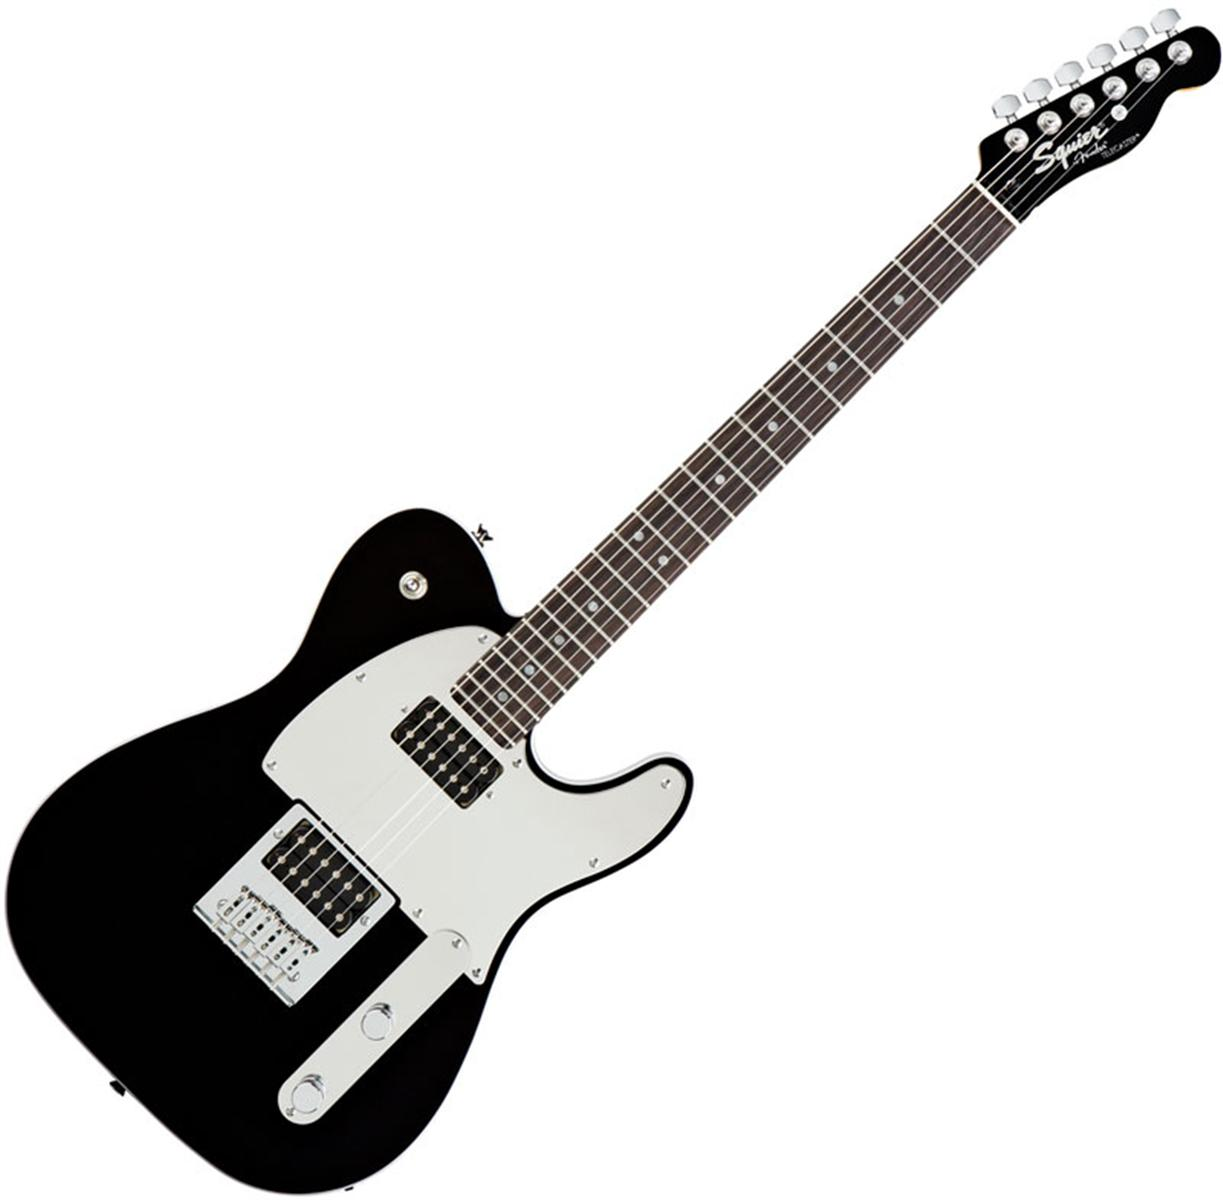 Blue Guitar Clipart Products26213 1200x1-Blue Guitar Clipart Products26213 1200x1200 265656 Jpg-1